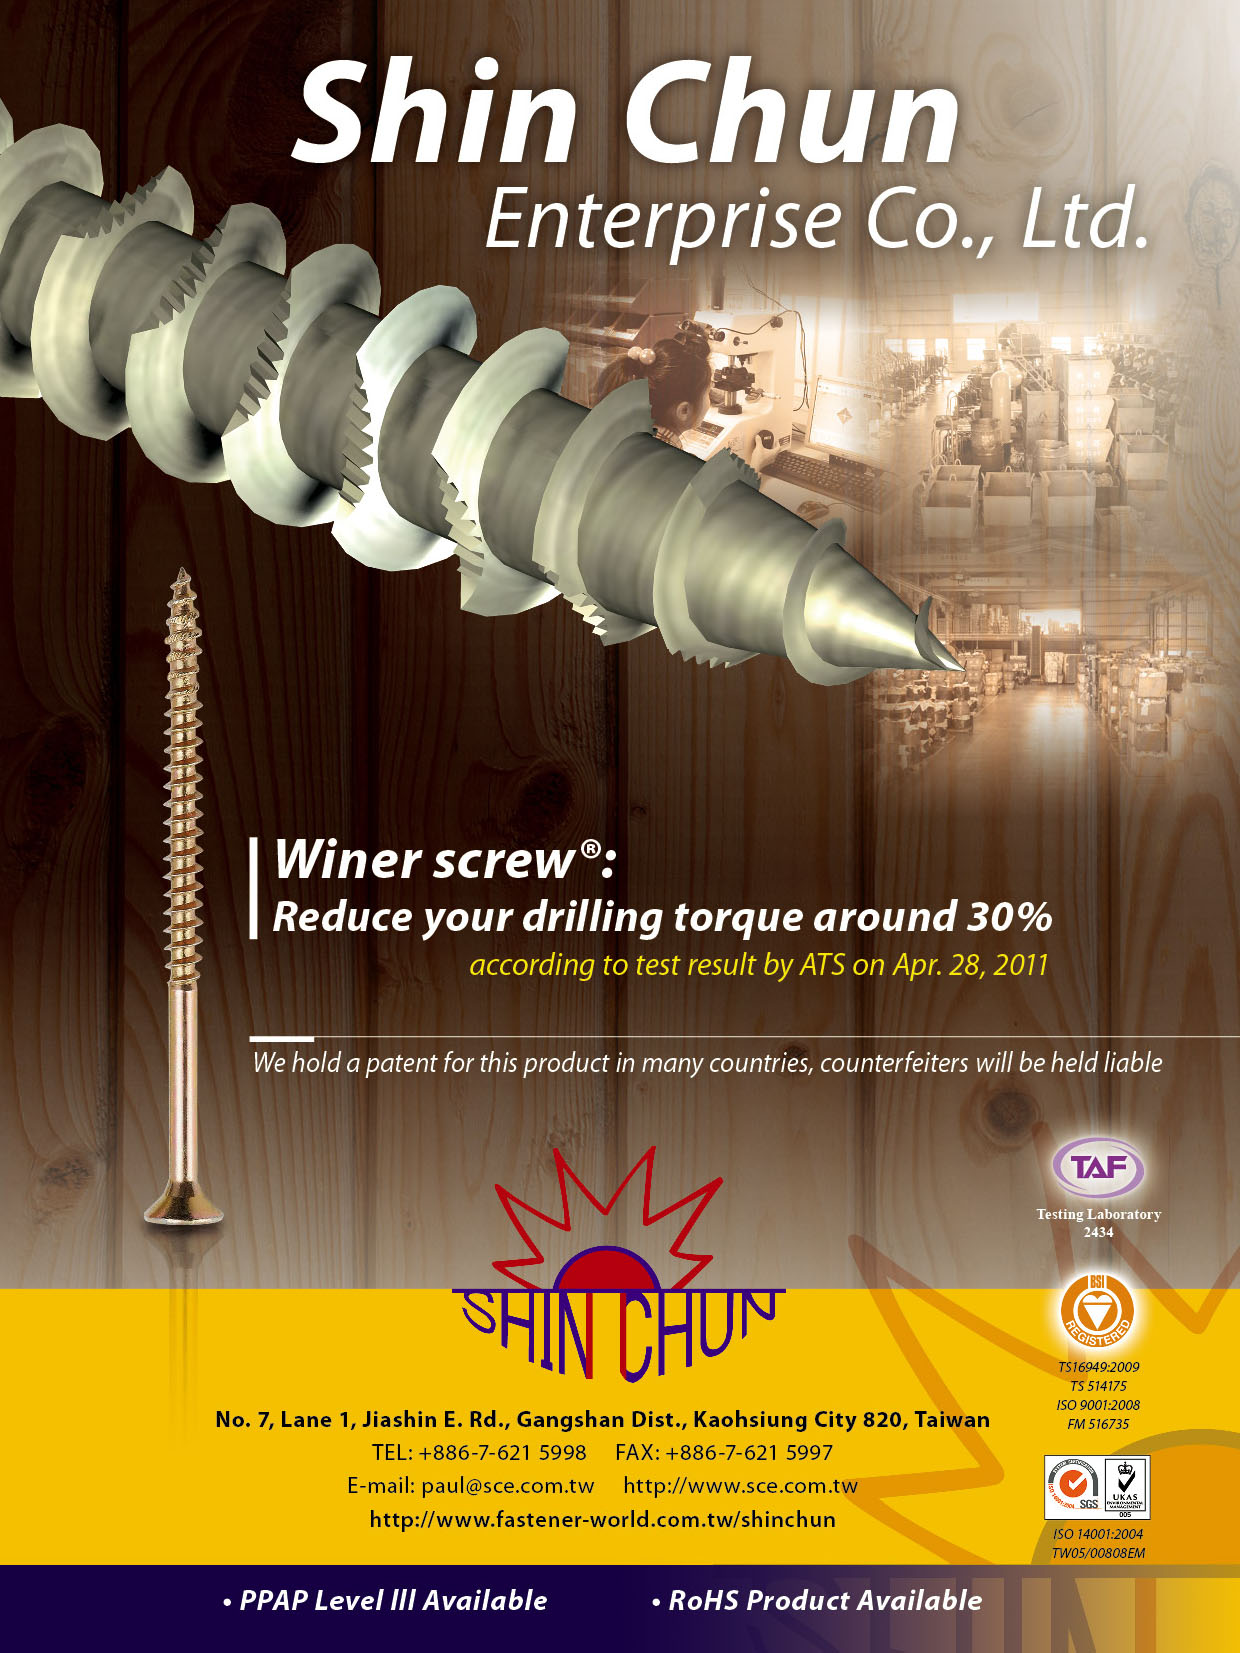 Winer Screw